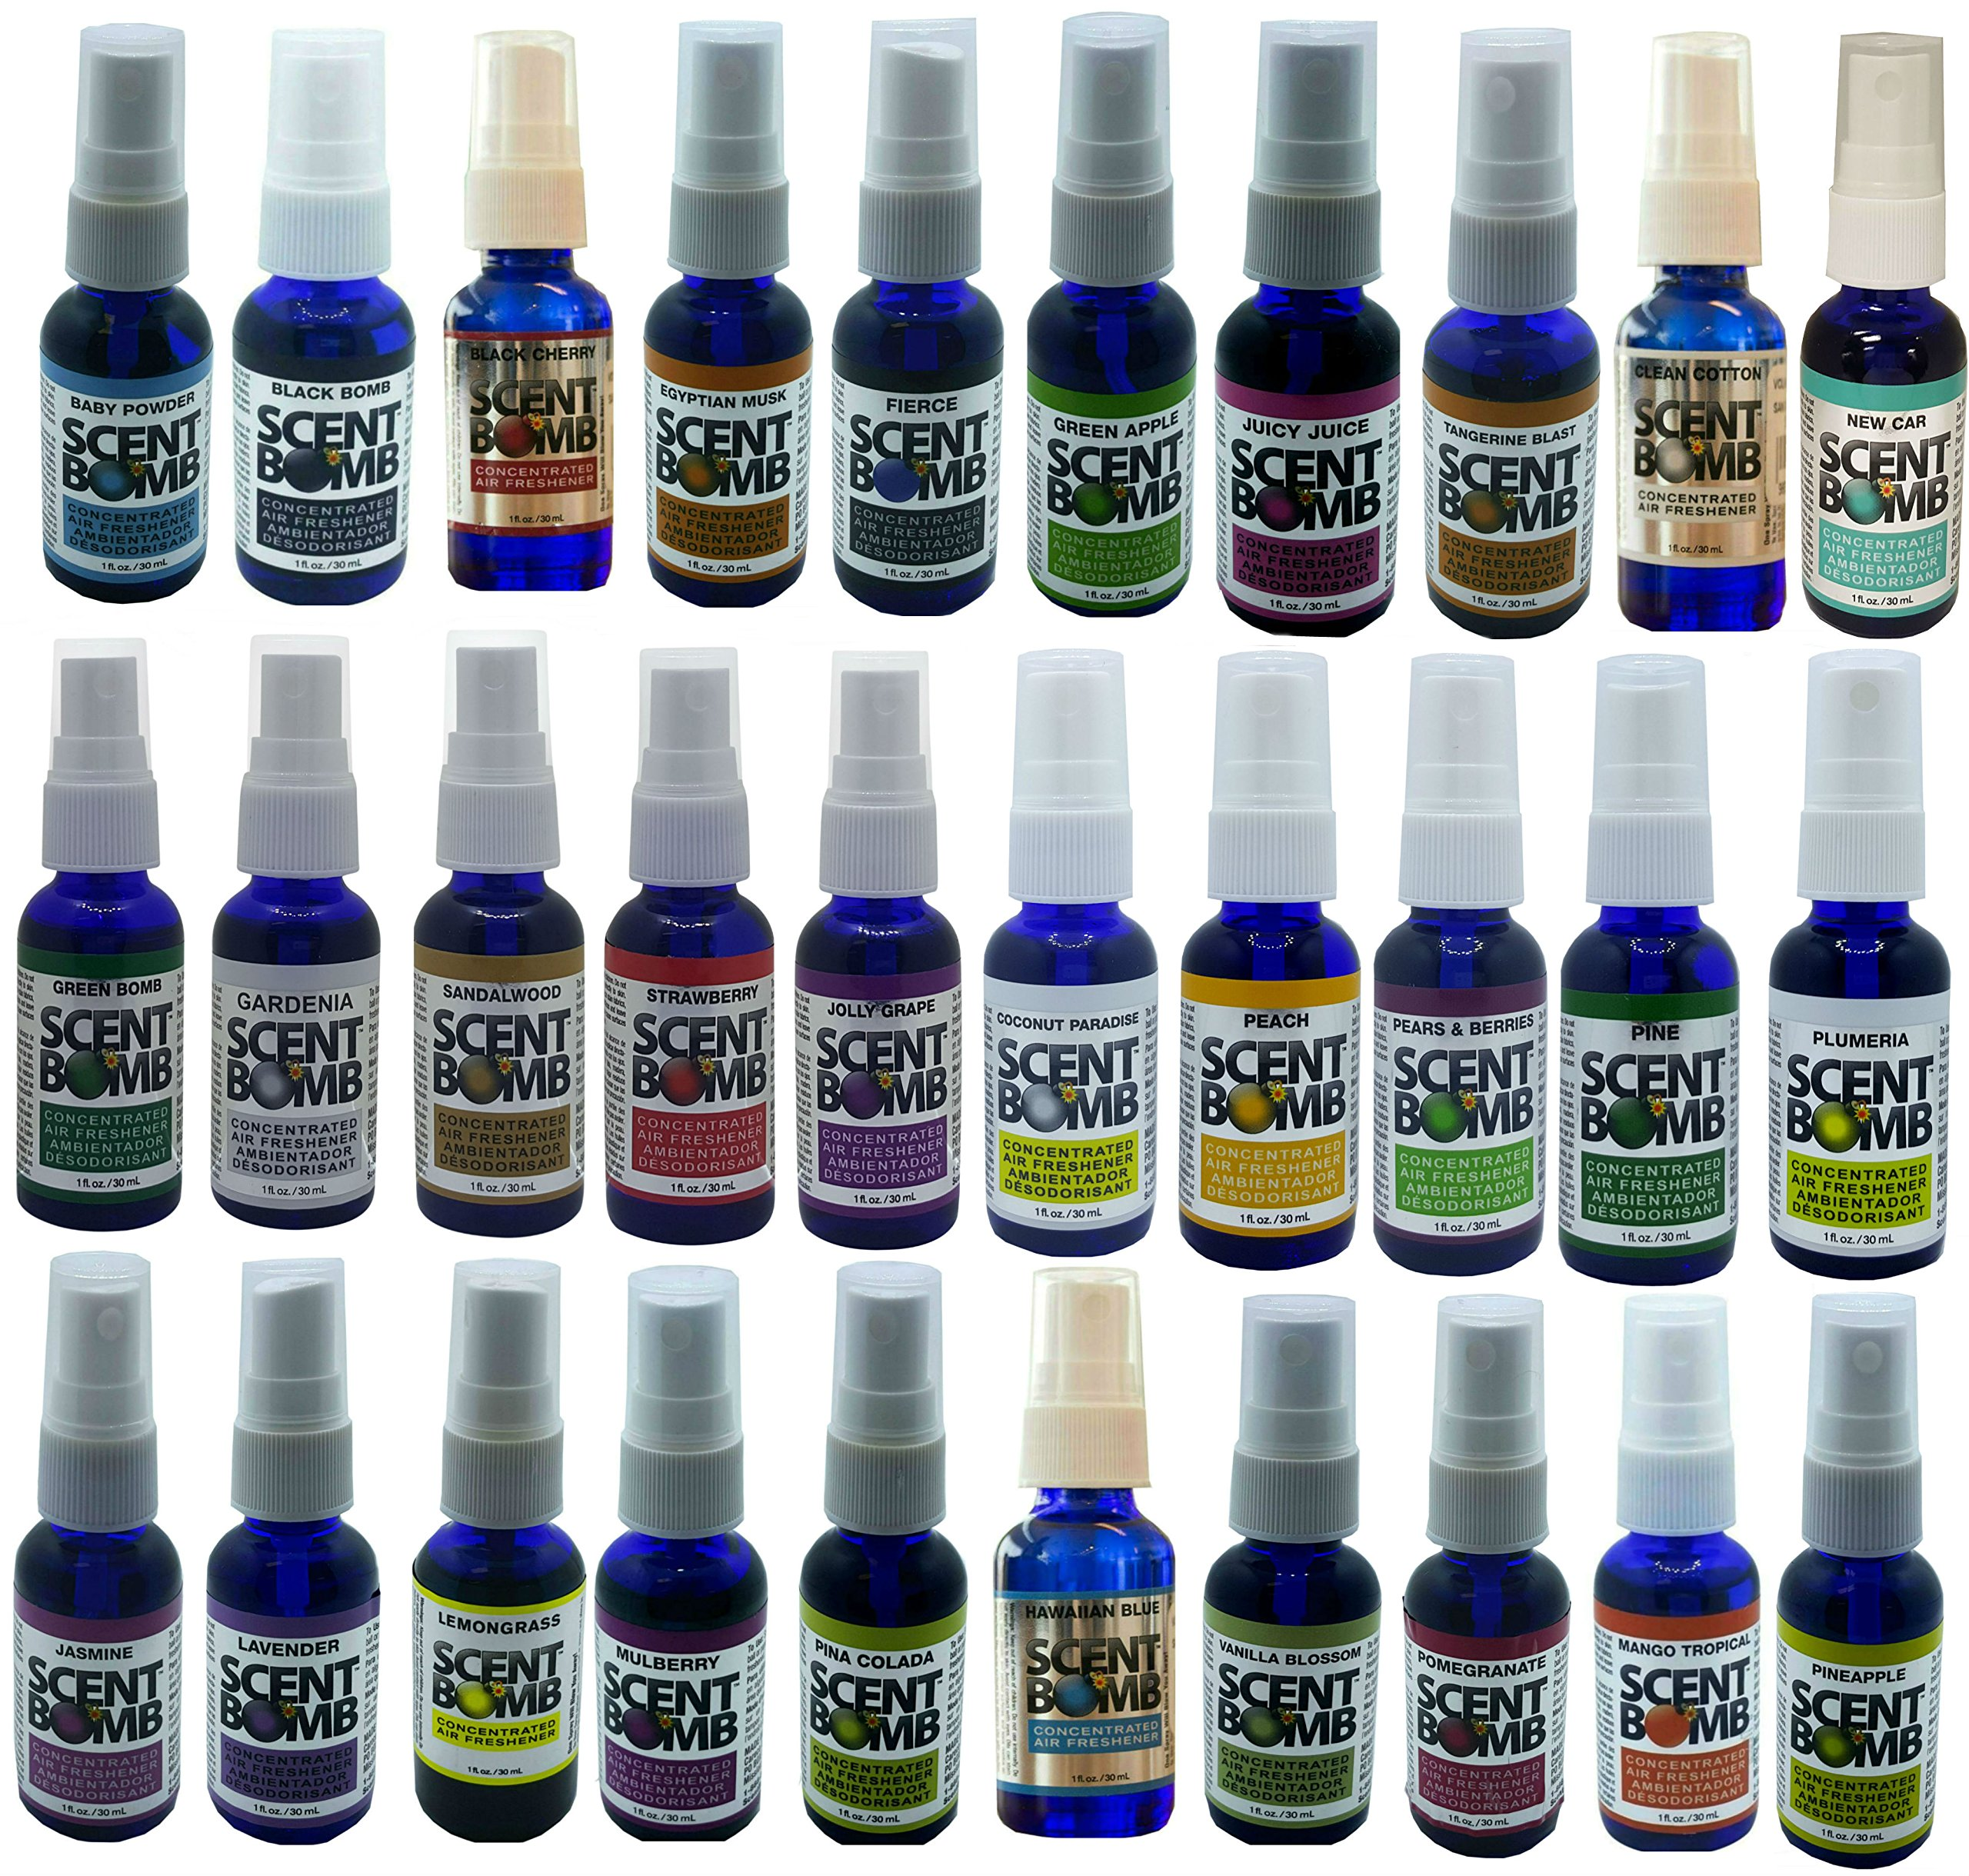 Scent Bomb Limited Edition Concentrated Air Freshener 36 Different Fragrance Pack by Scent Bomb